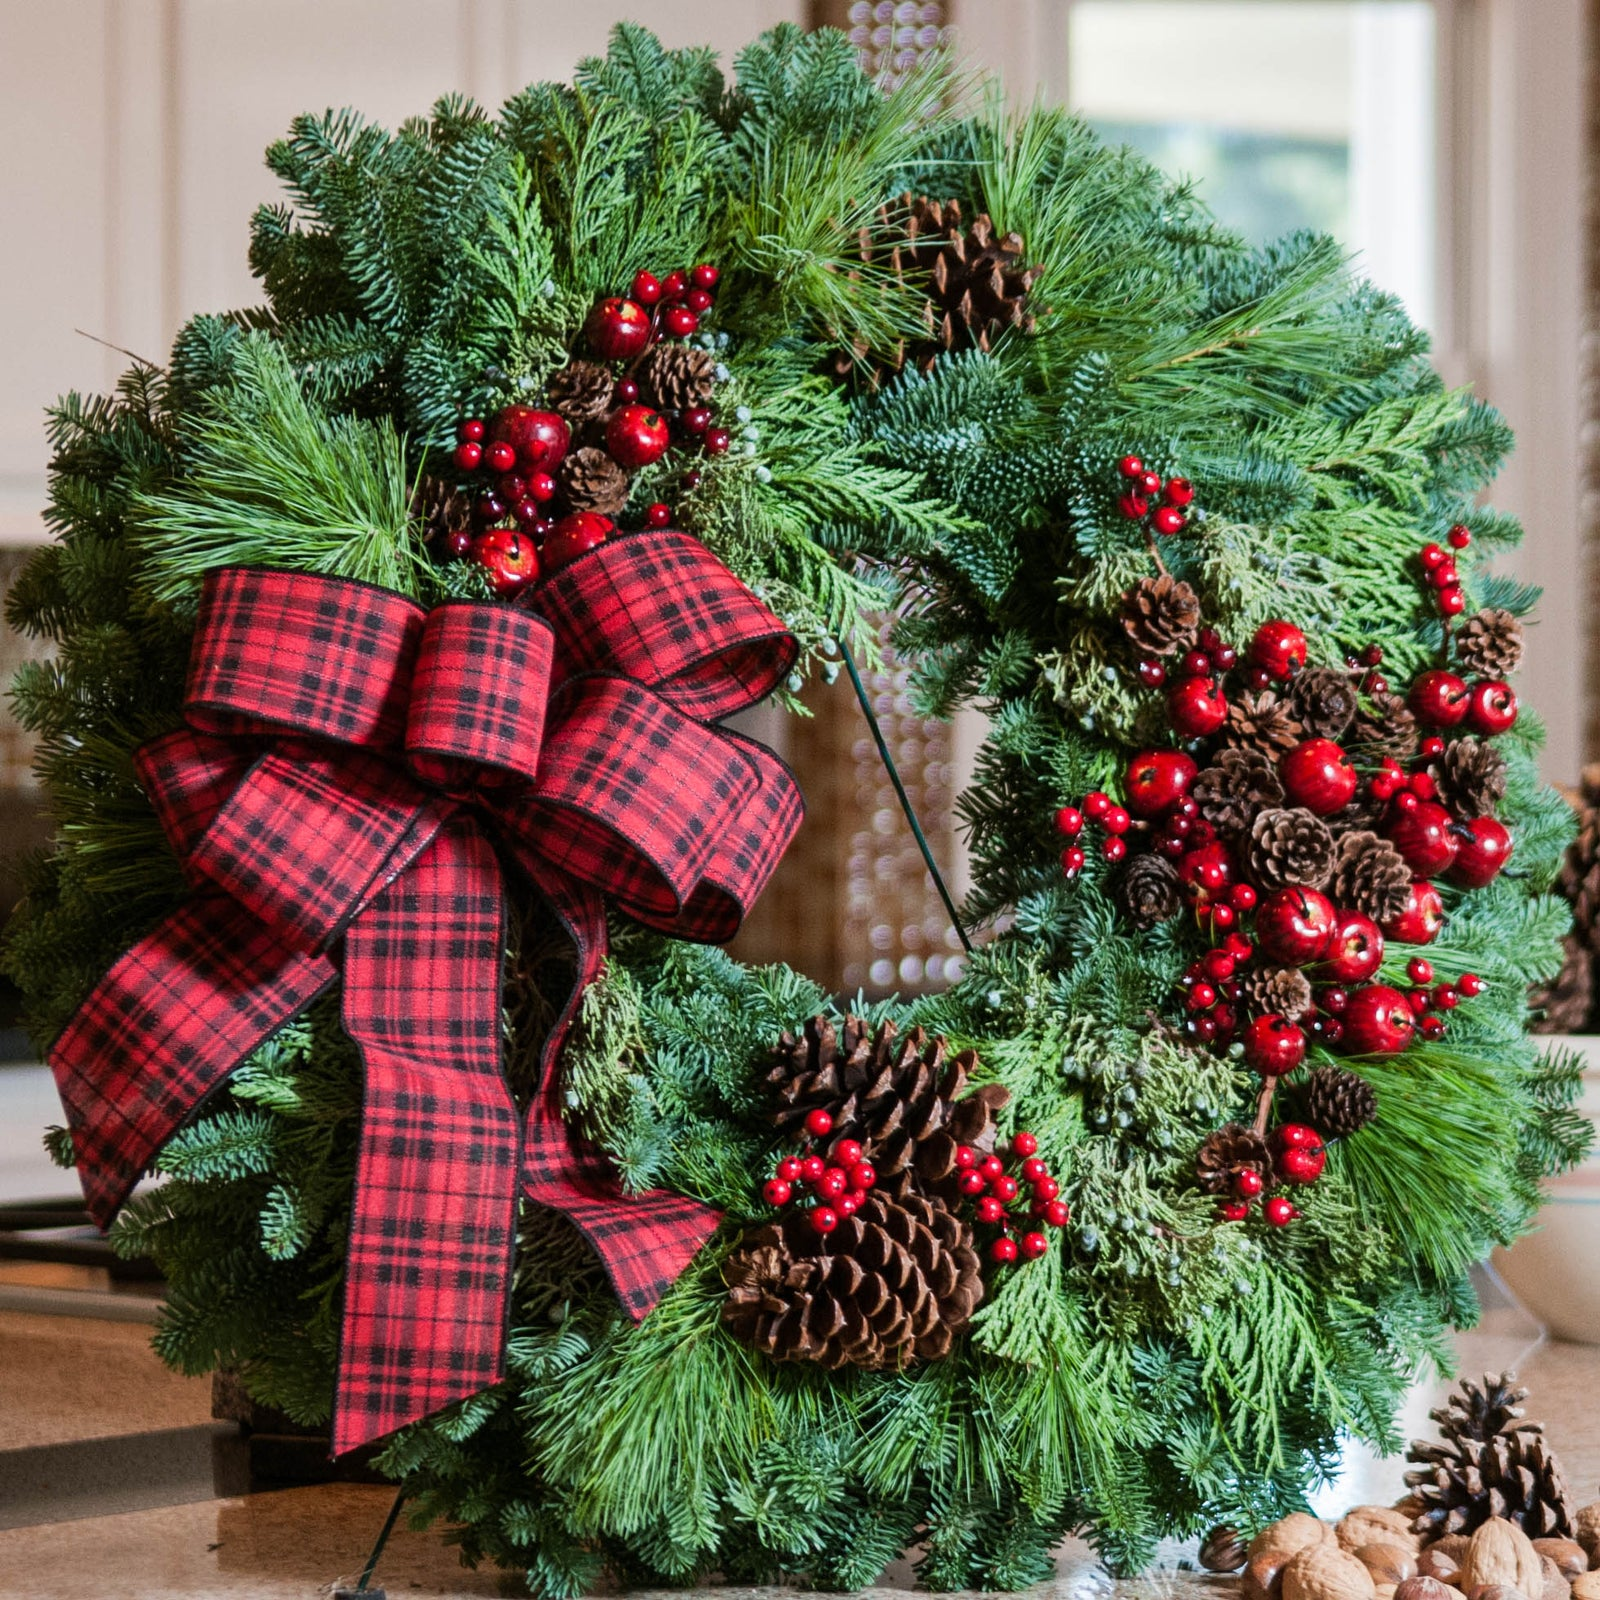 Fresh Christmas Wreaths.Lynch Creek Farm Fresh Christmas Wreaths Centerpieces And